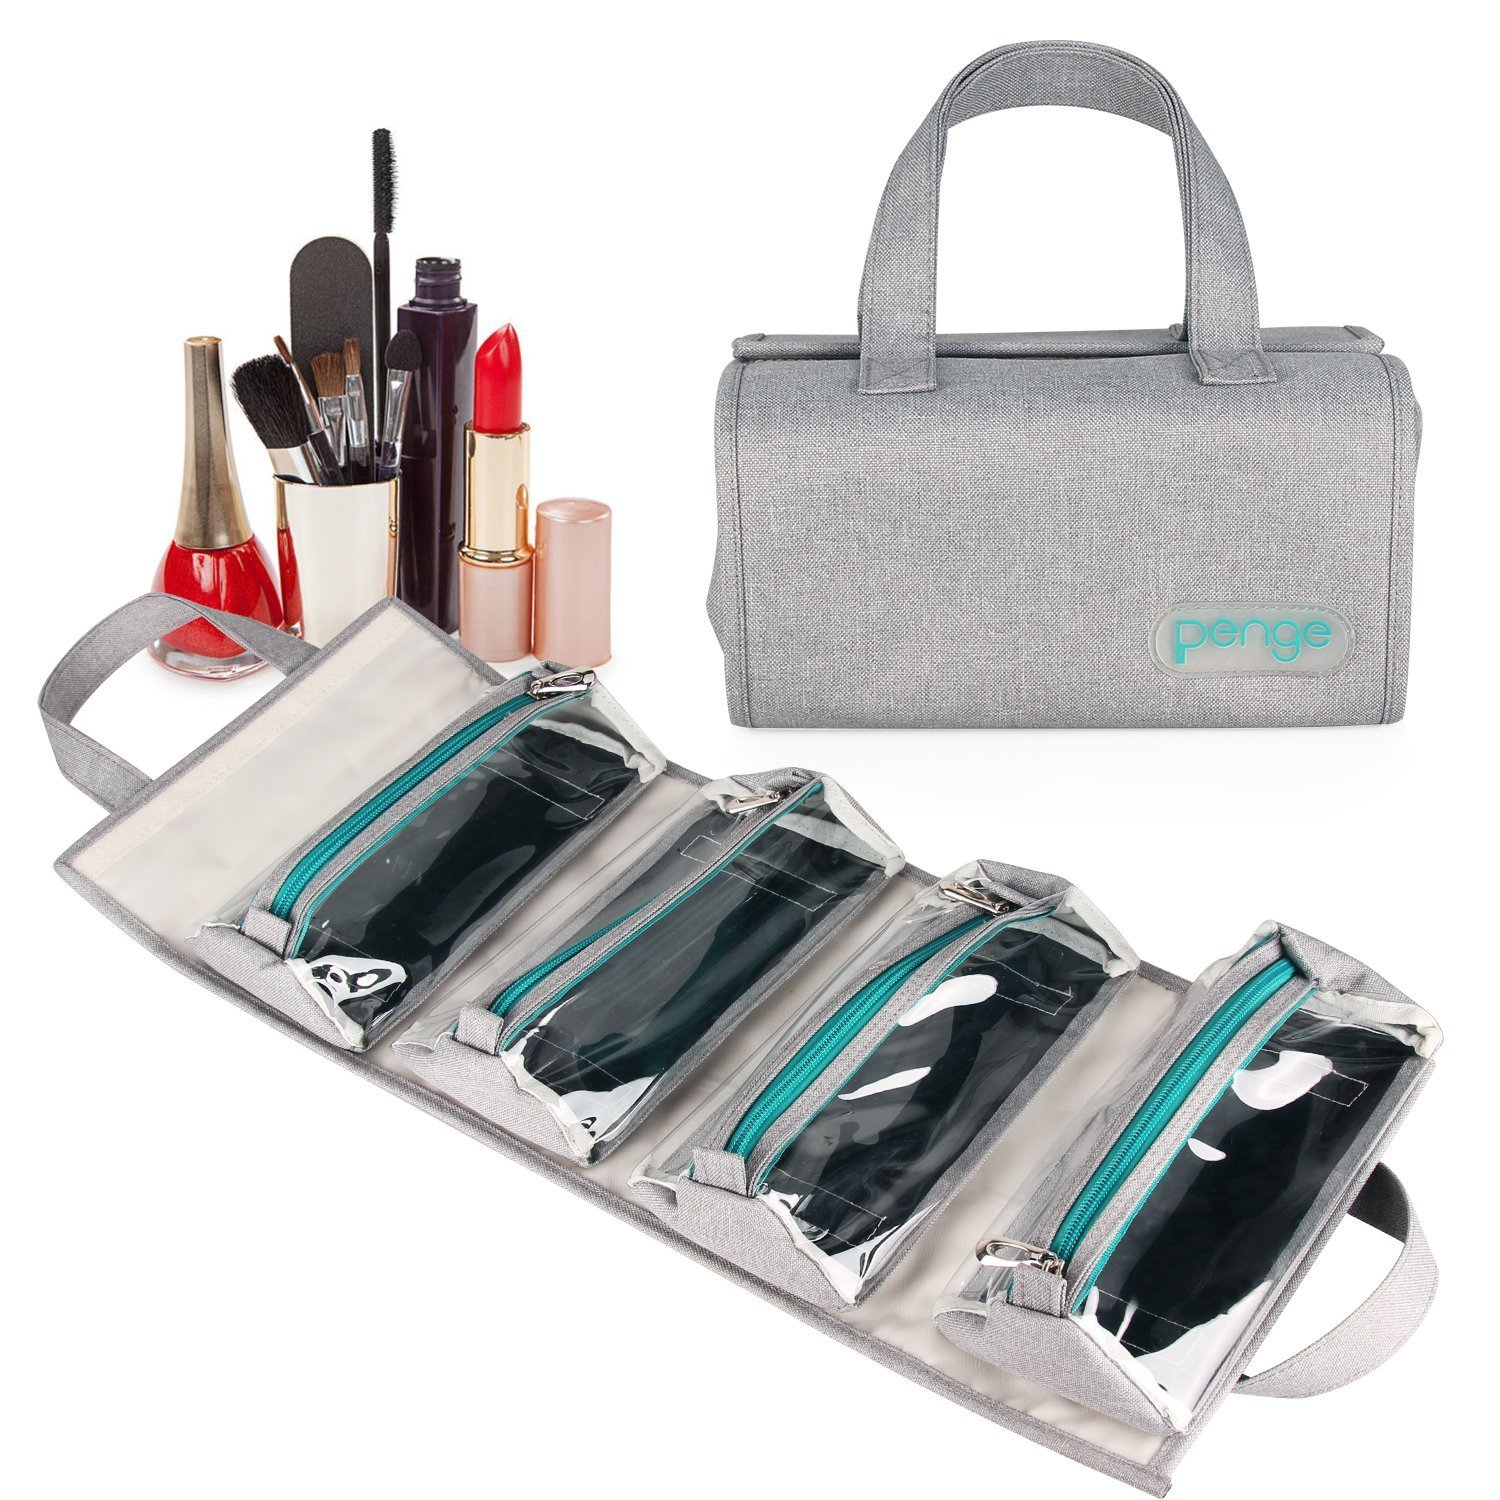 Roll-Up Organizer - Lifeasy Portable Multifunction Folding Travel Cosmetic Bag